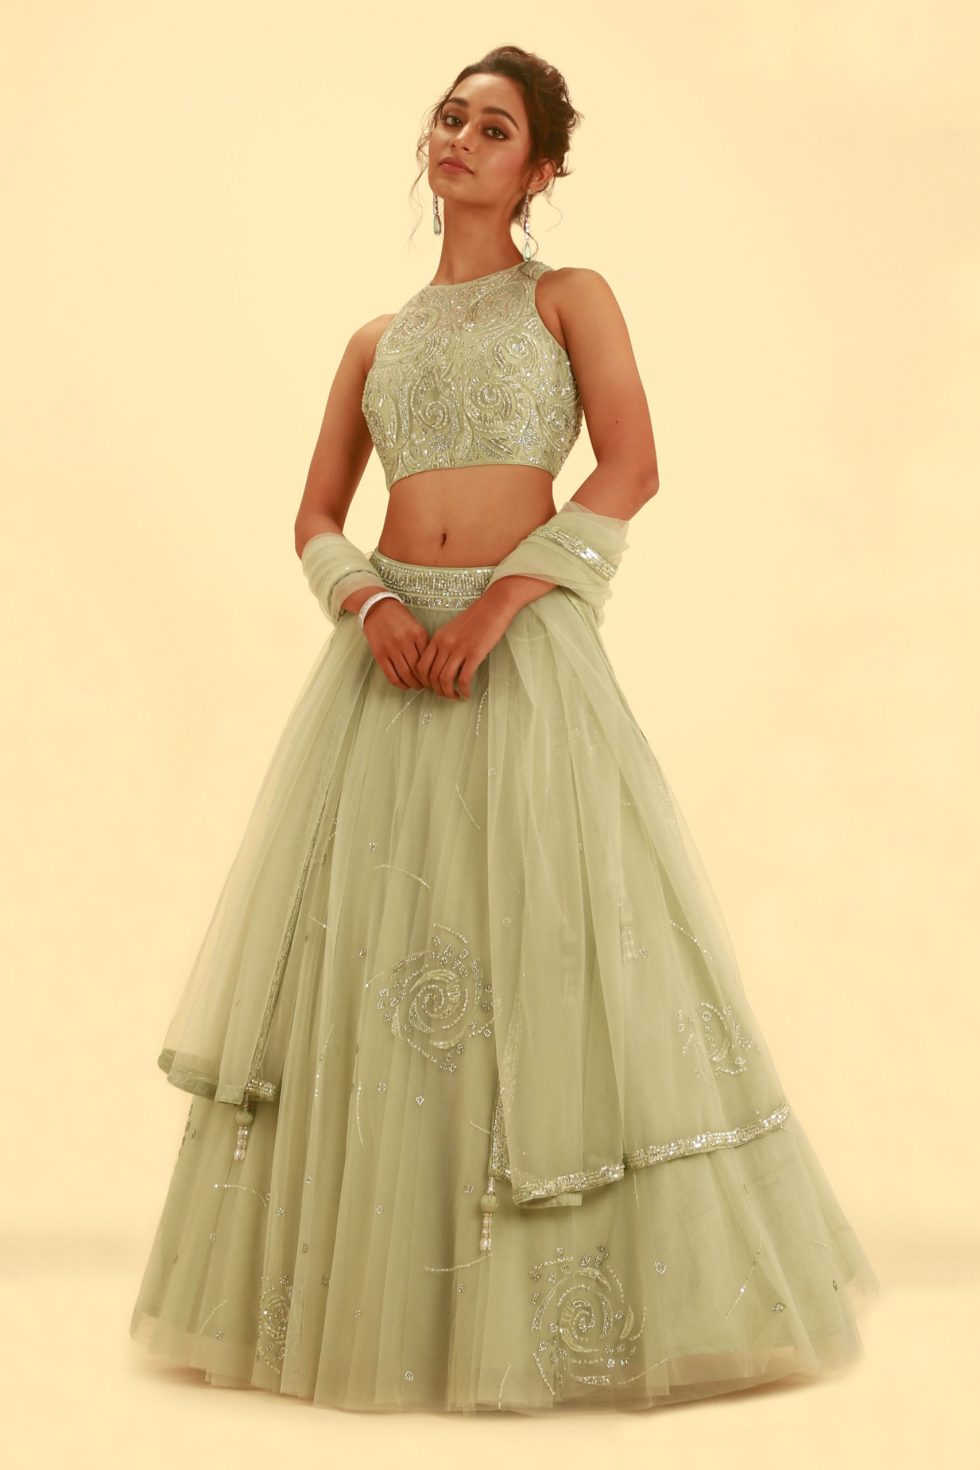 Pista green tulle lehenga set with self hand embroidery and matching dupatta with border